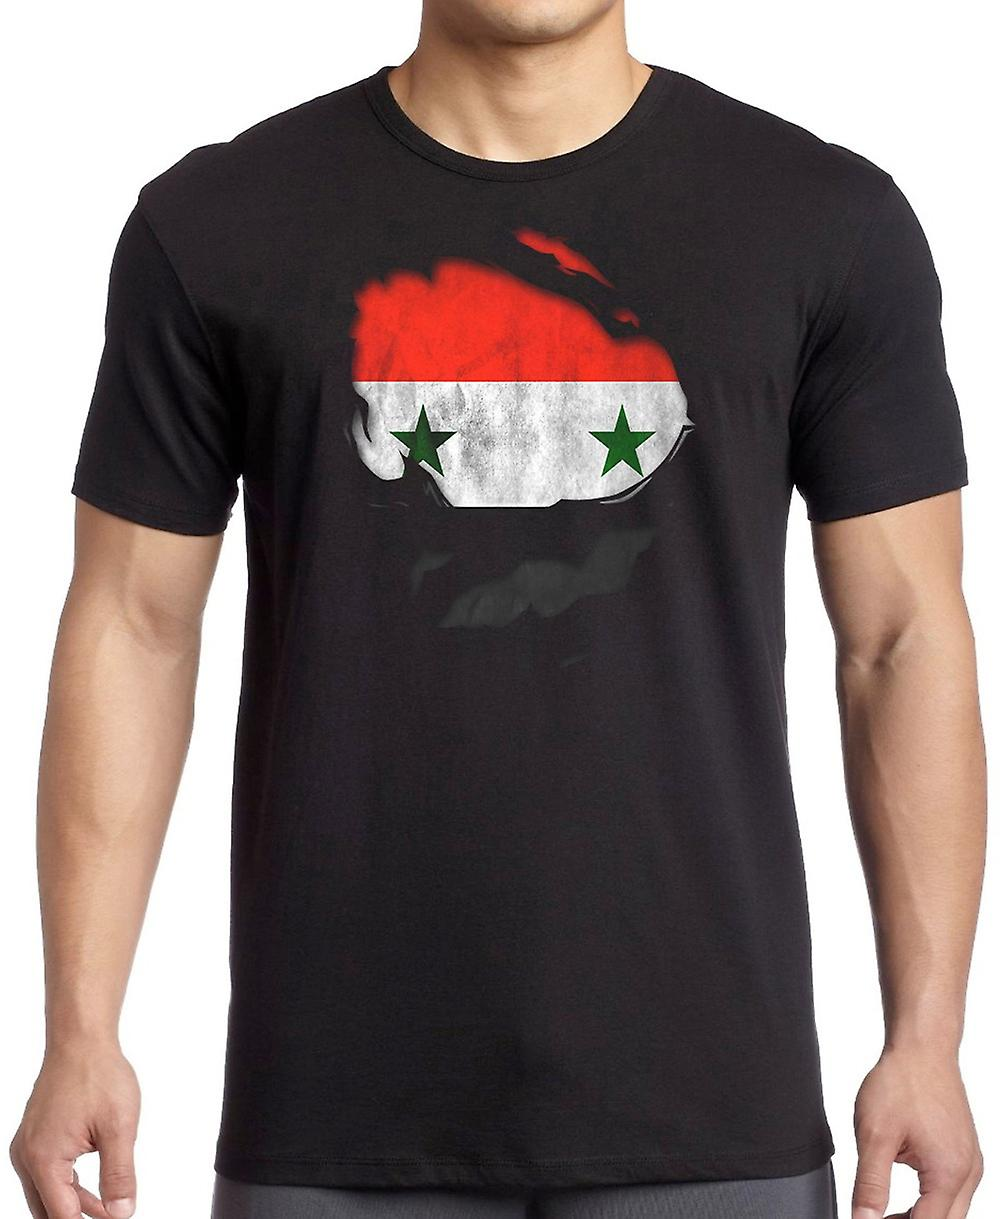 Syria Ripped Effect Under Shirt Women T Shirt